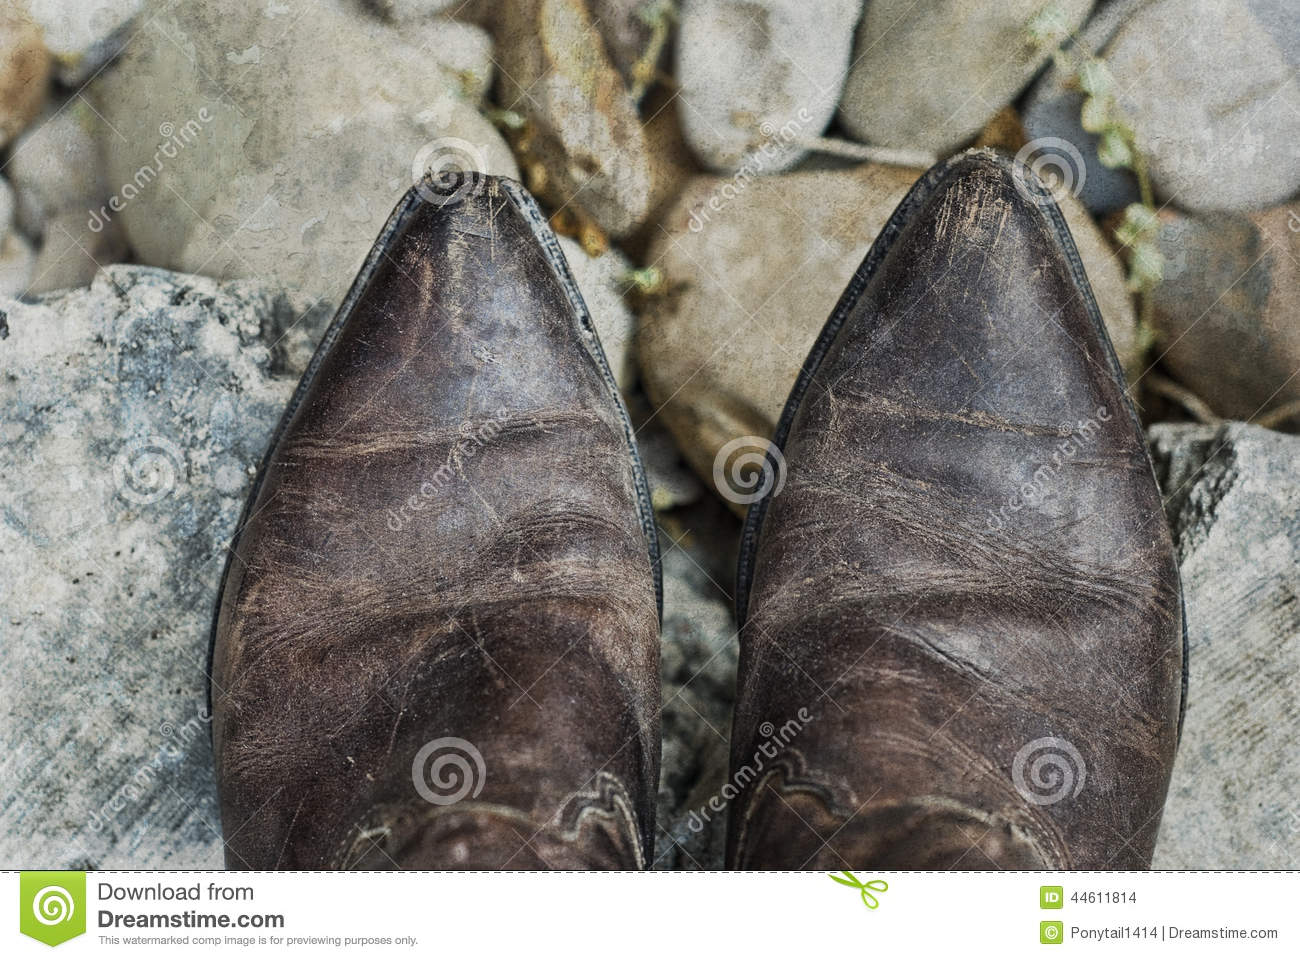 Grunge Cowboy Boots Stock Photo - Image: 44611814